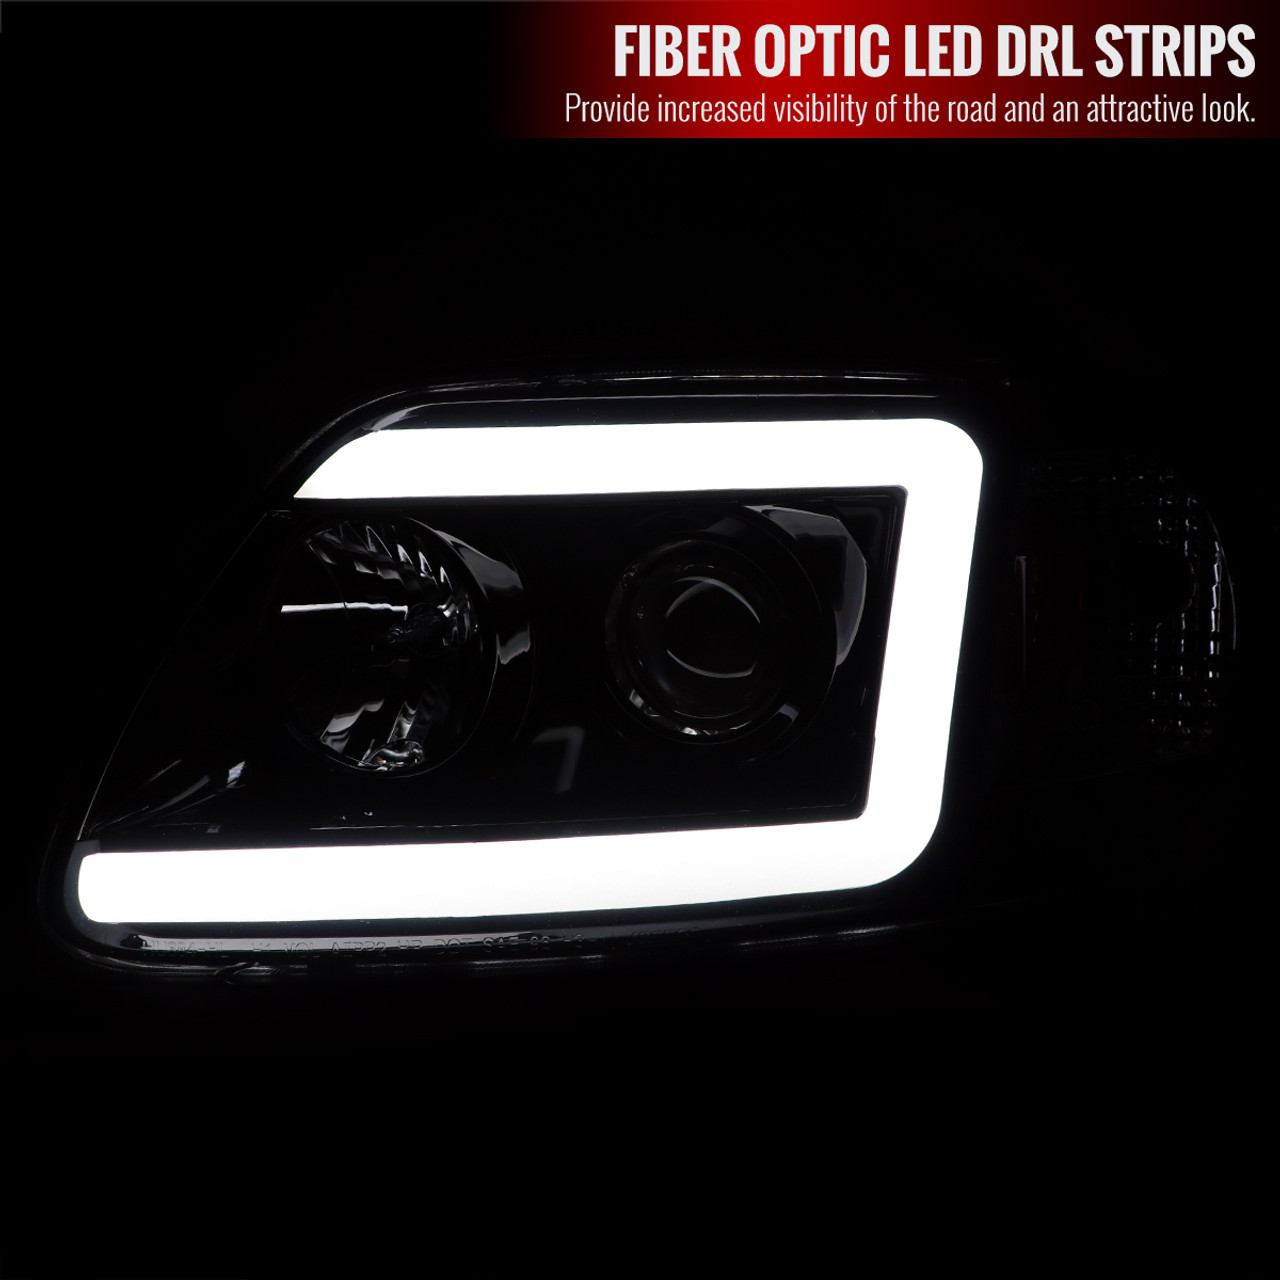 Driver Side with Install Kit Led Larson Electronics 0909P4PF9P4 2007 Ford Expedition-Lh Inside Post Mount Spotlight 6 Inch -Chrome